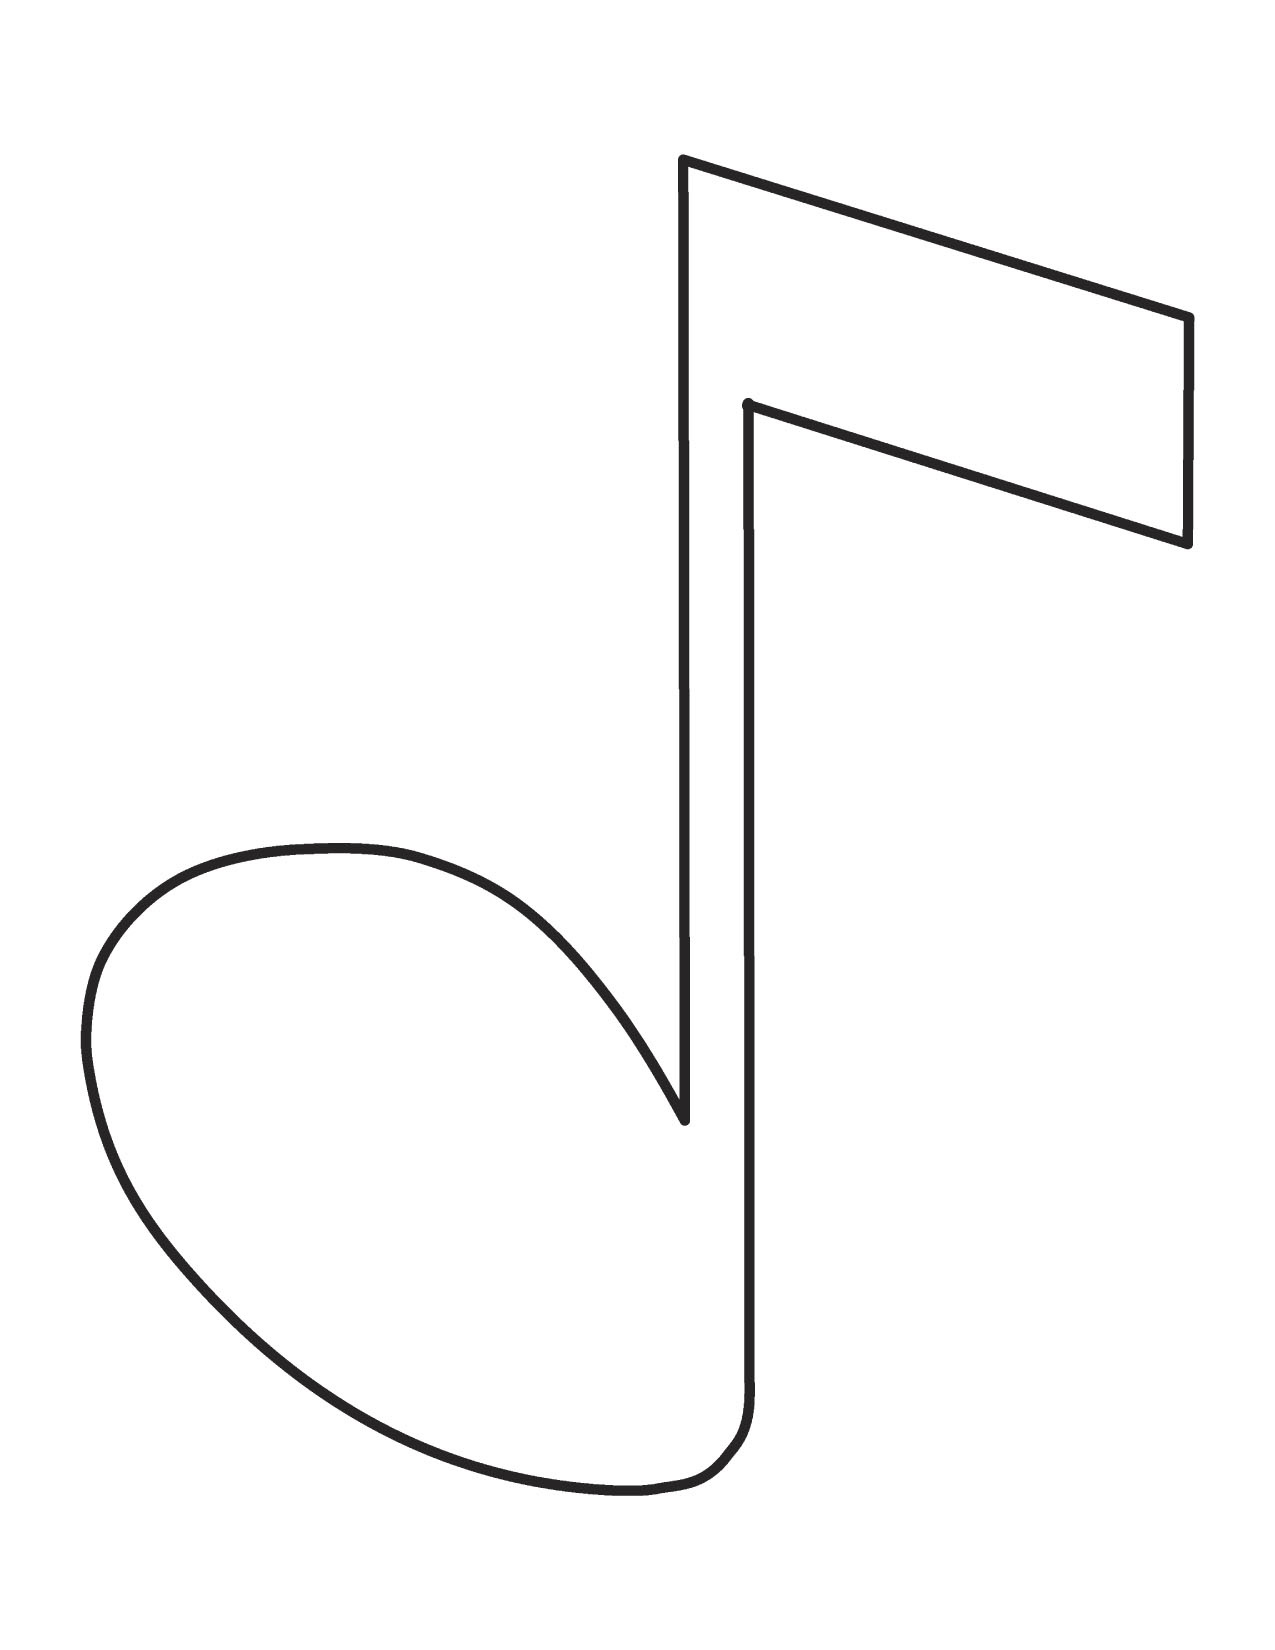 Free Printable Music Note Coloring Pages For Kids - Clip Art Library - Free Printable Music Notes Templates